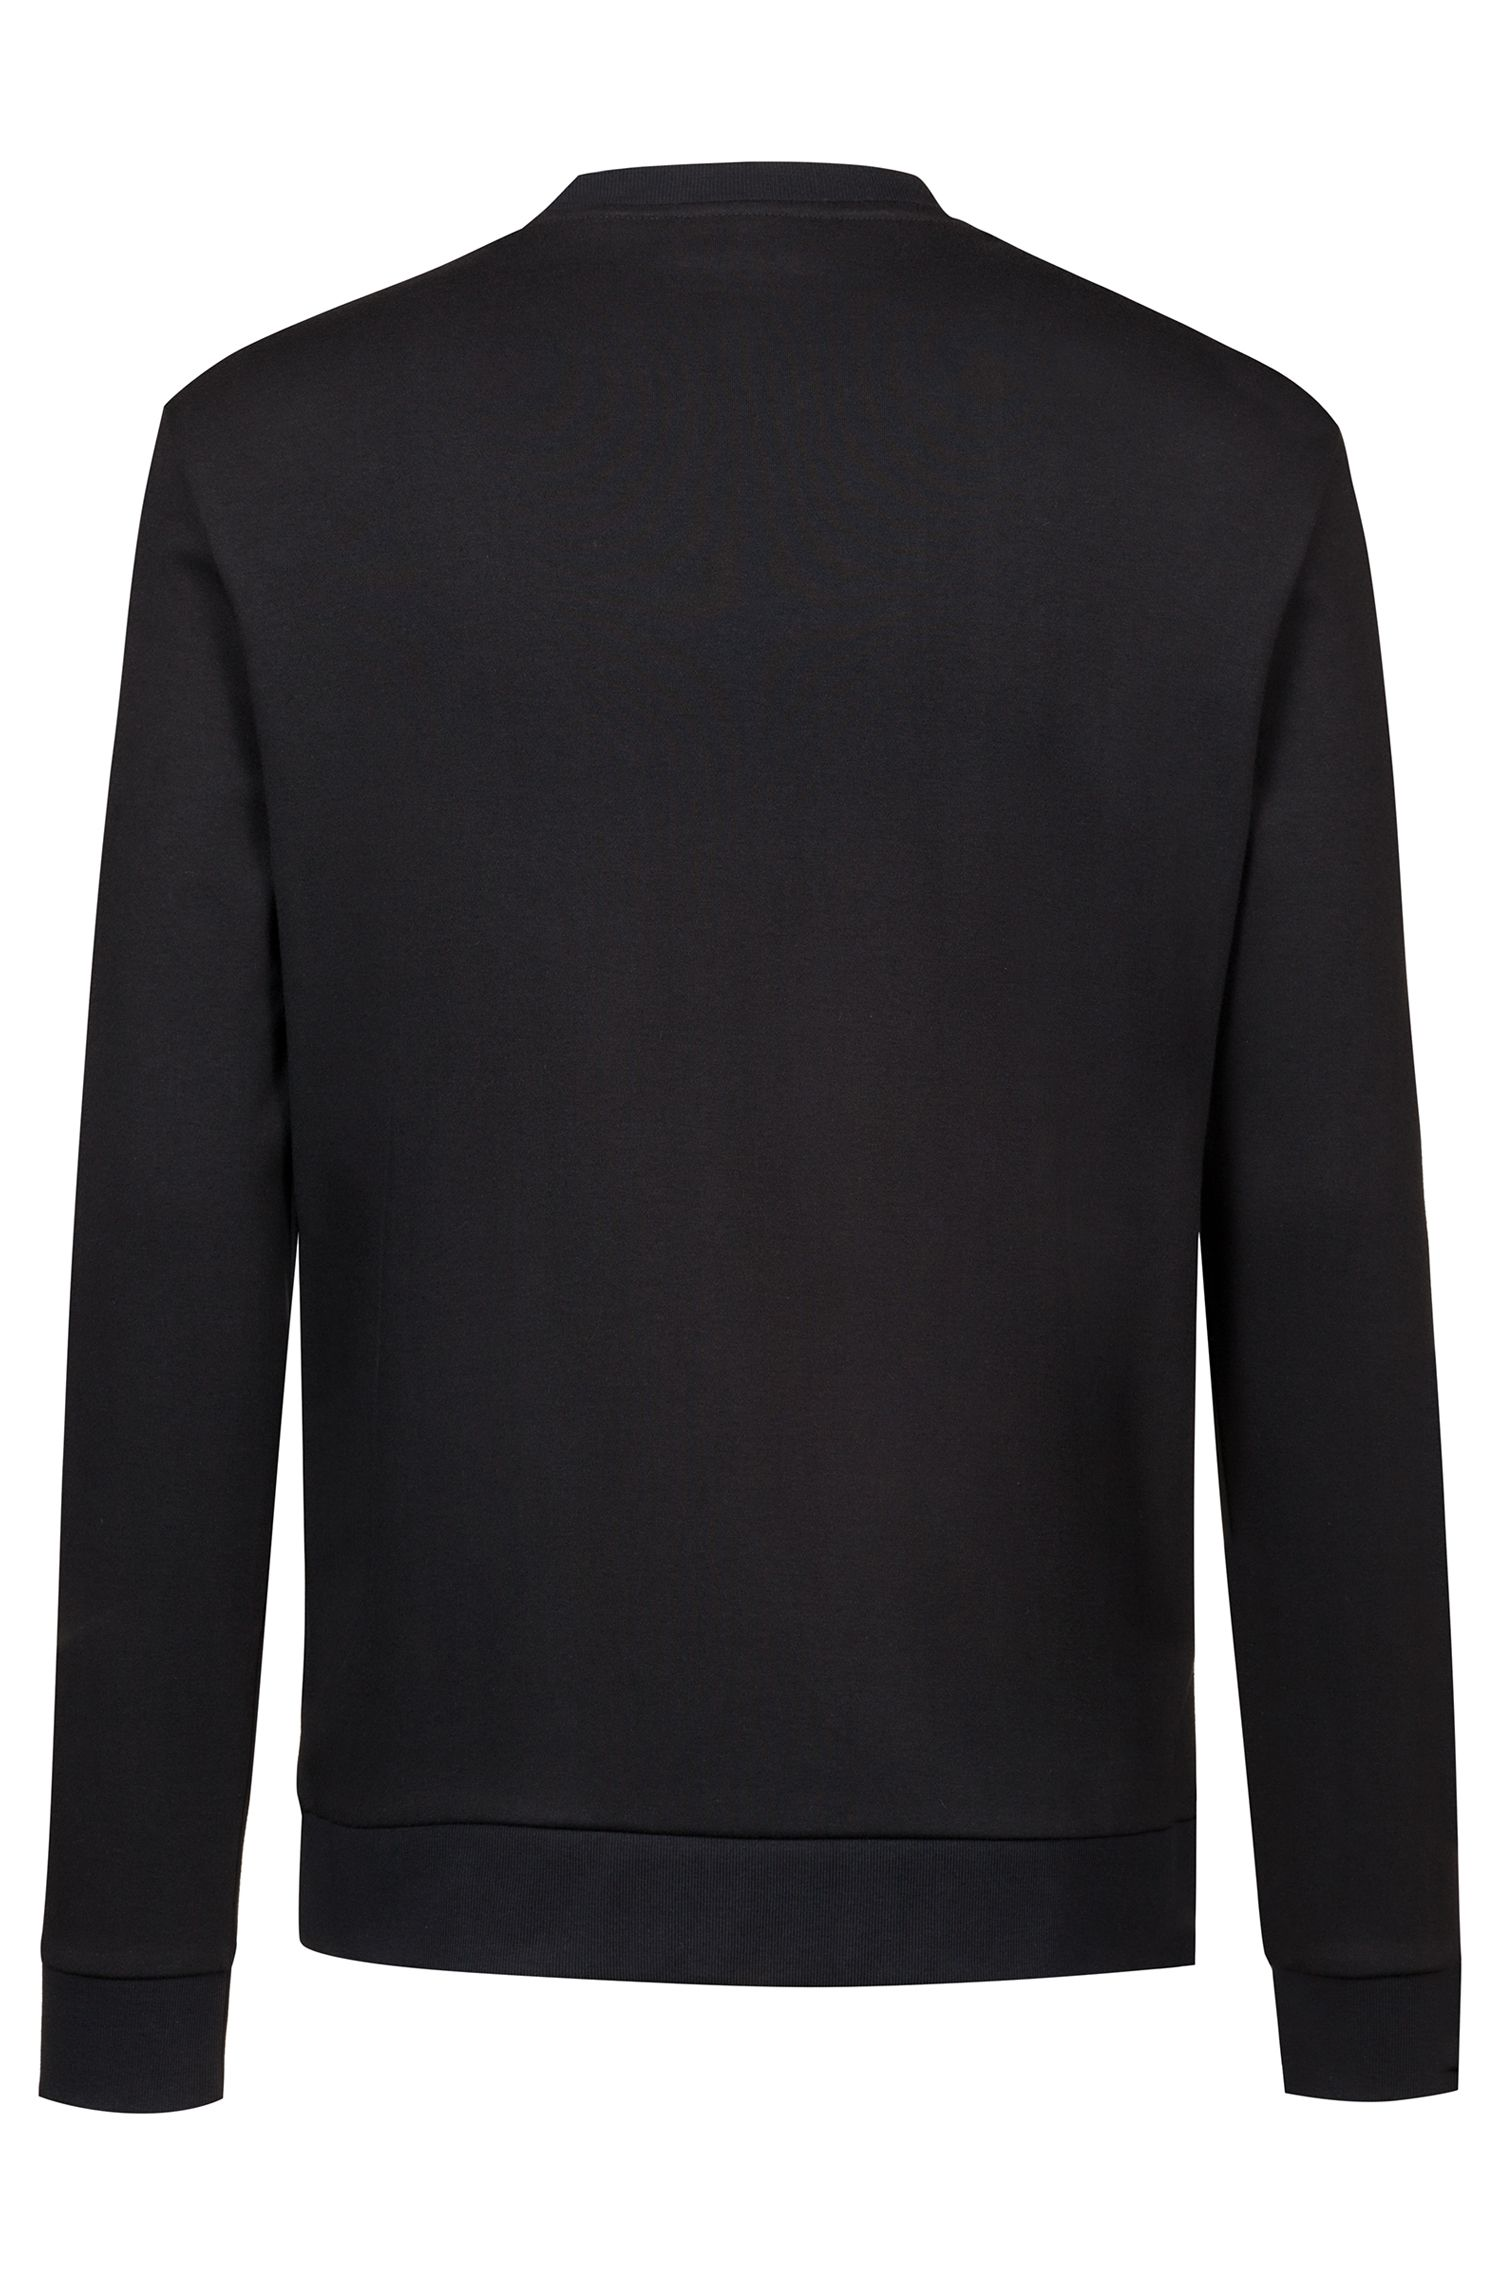 Crew-neck sweatshirt in cotton with foil-print reverse logo, Black